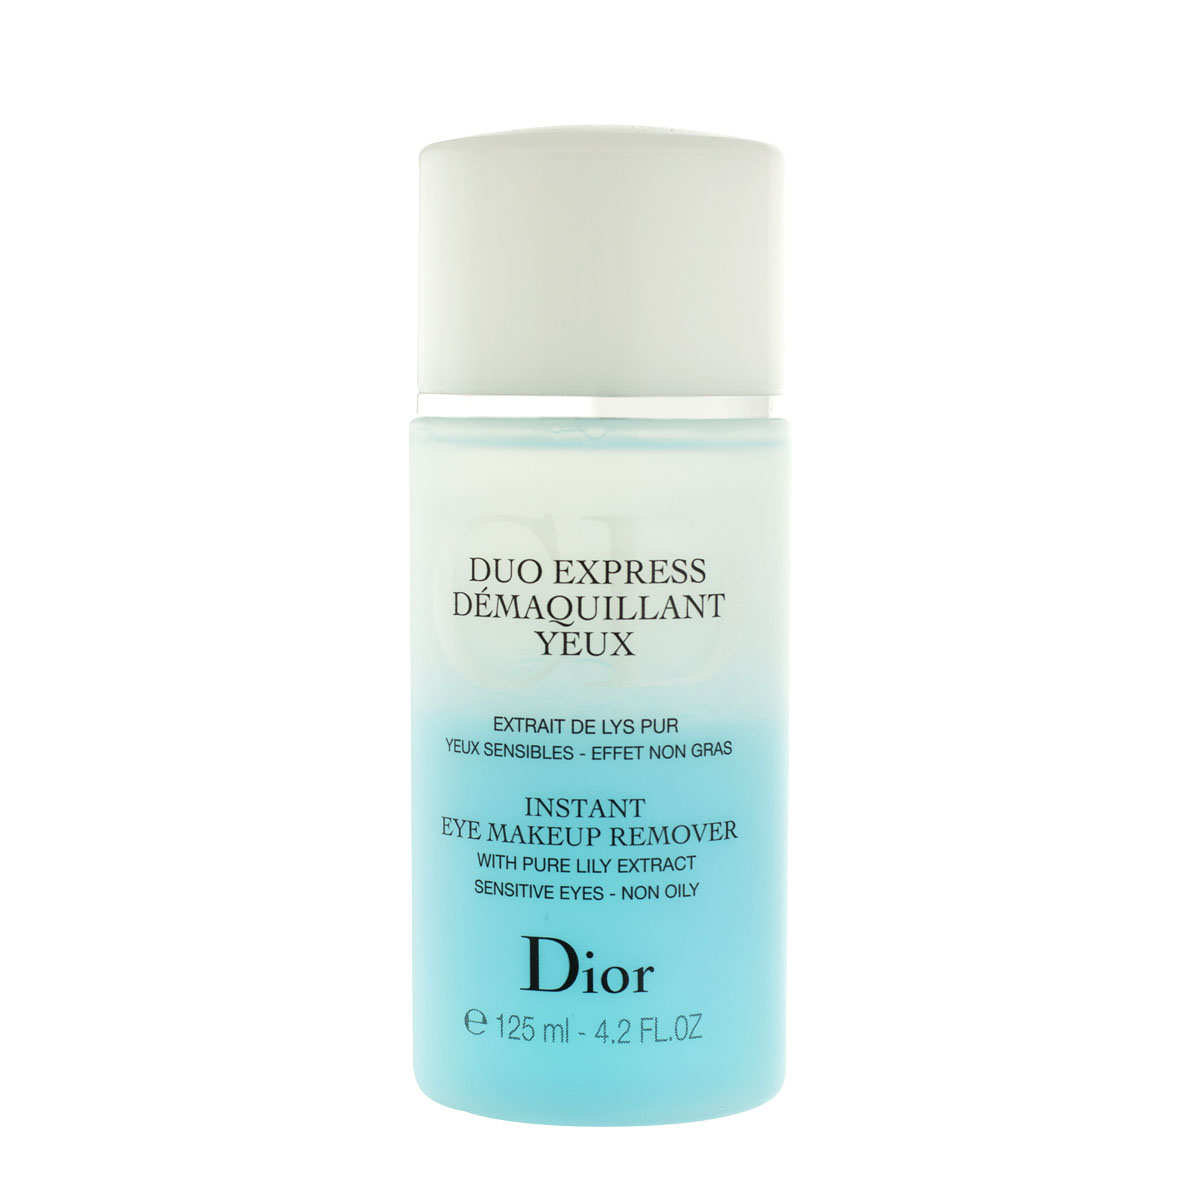 Dior Christian Duo Express Demaquillant Yeux Eye Make-Up Remover 125 ml